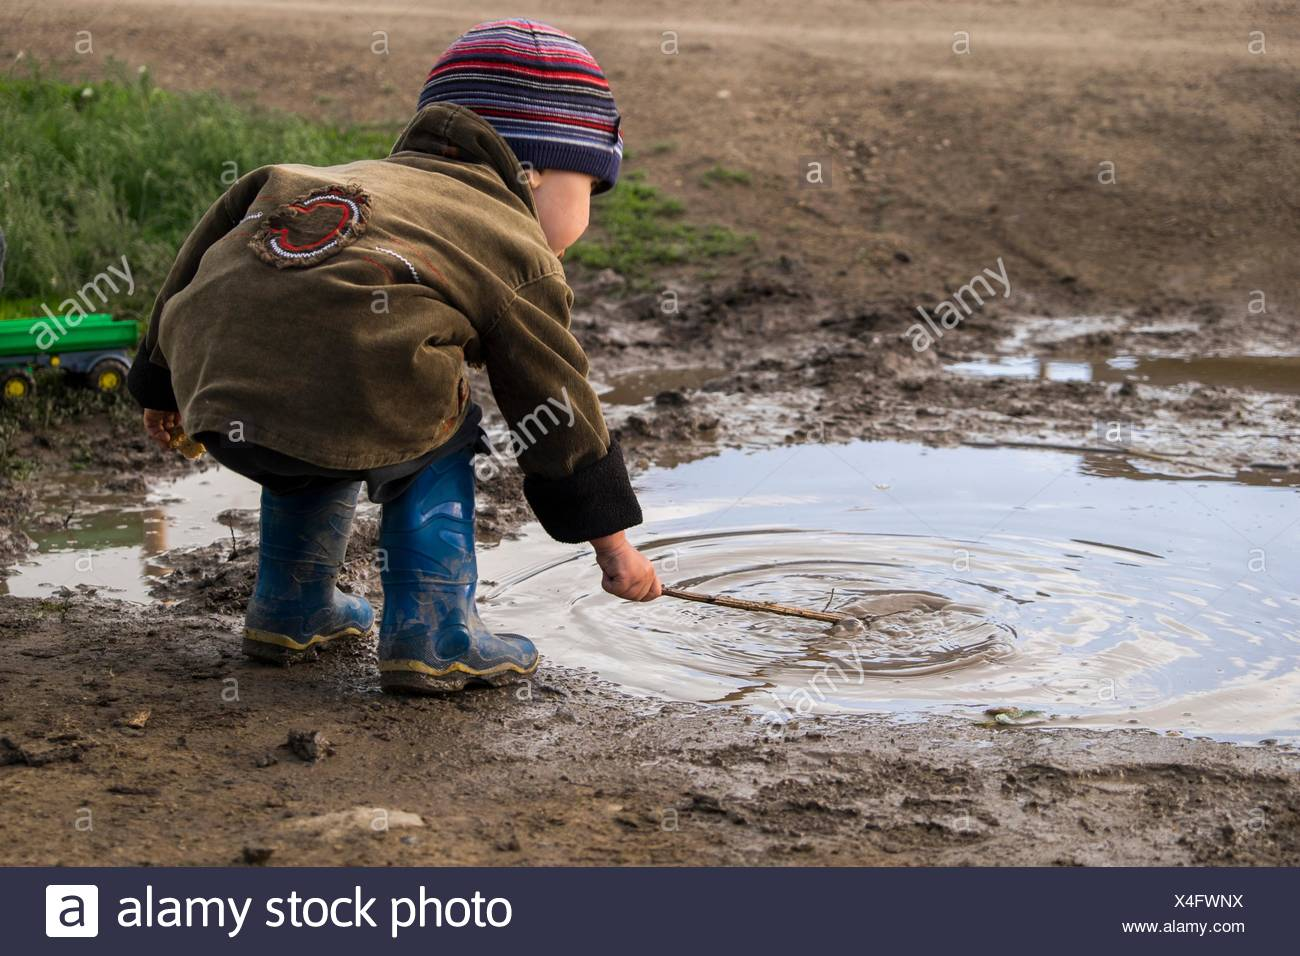 Male toddler wearing rubber boots playing with stick in puddle - Stock Image